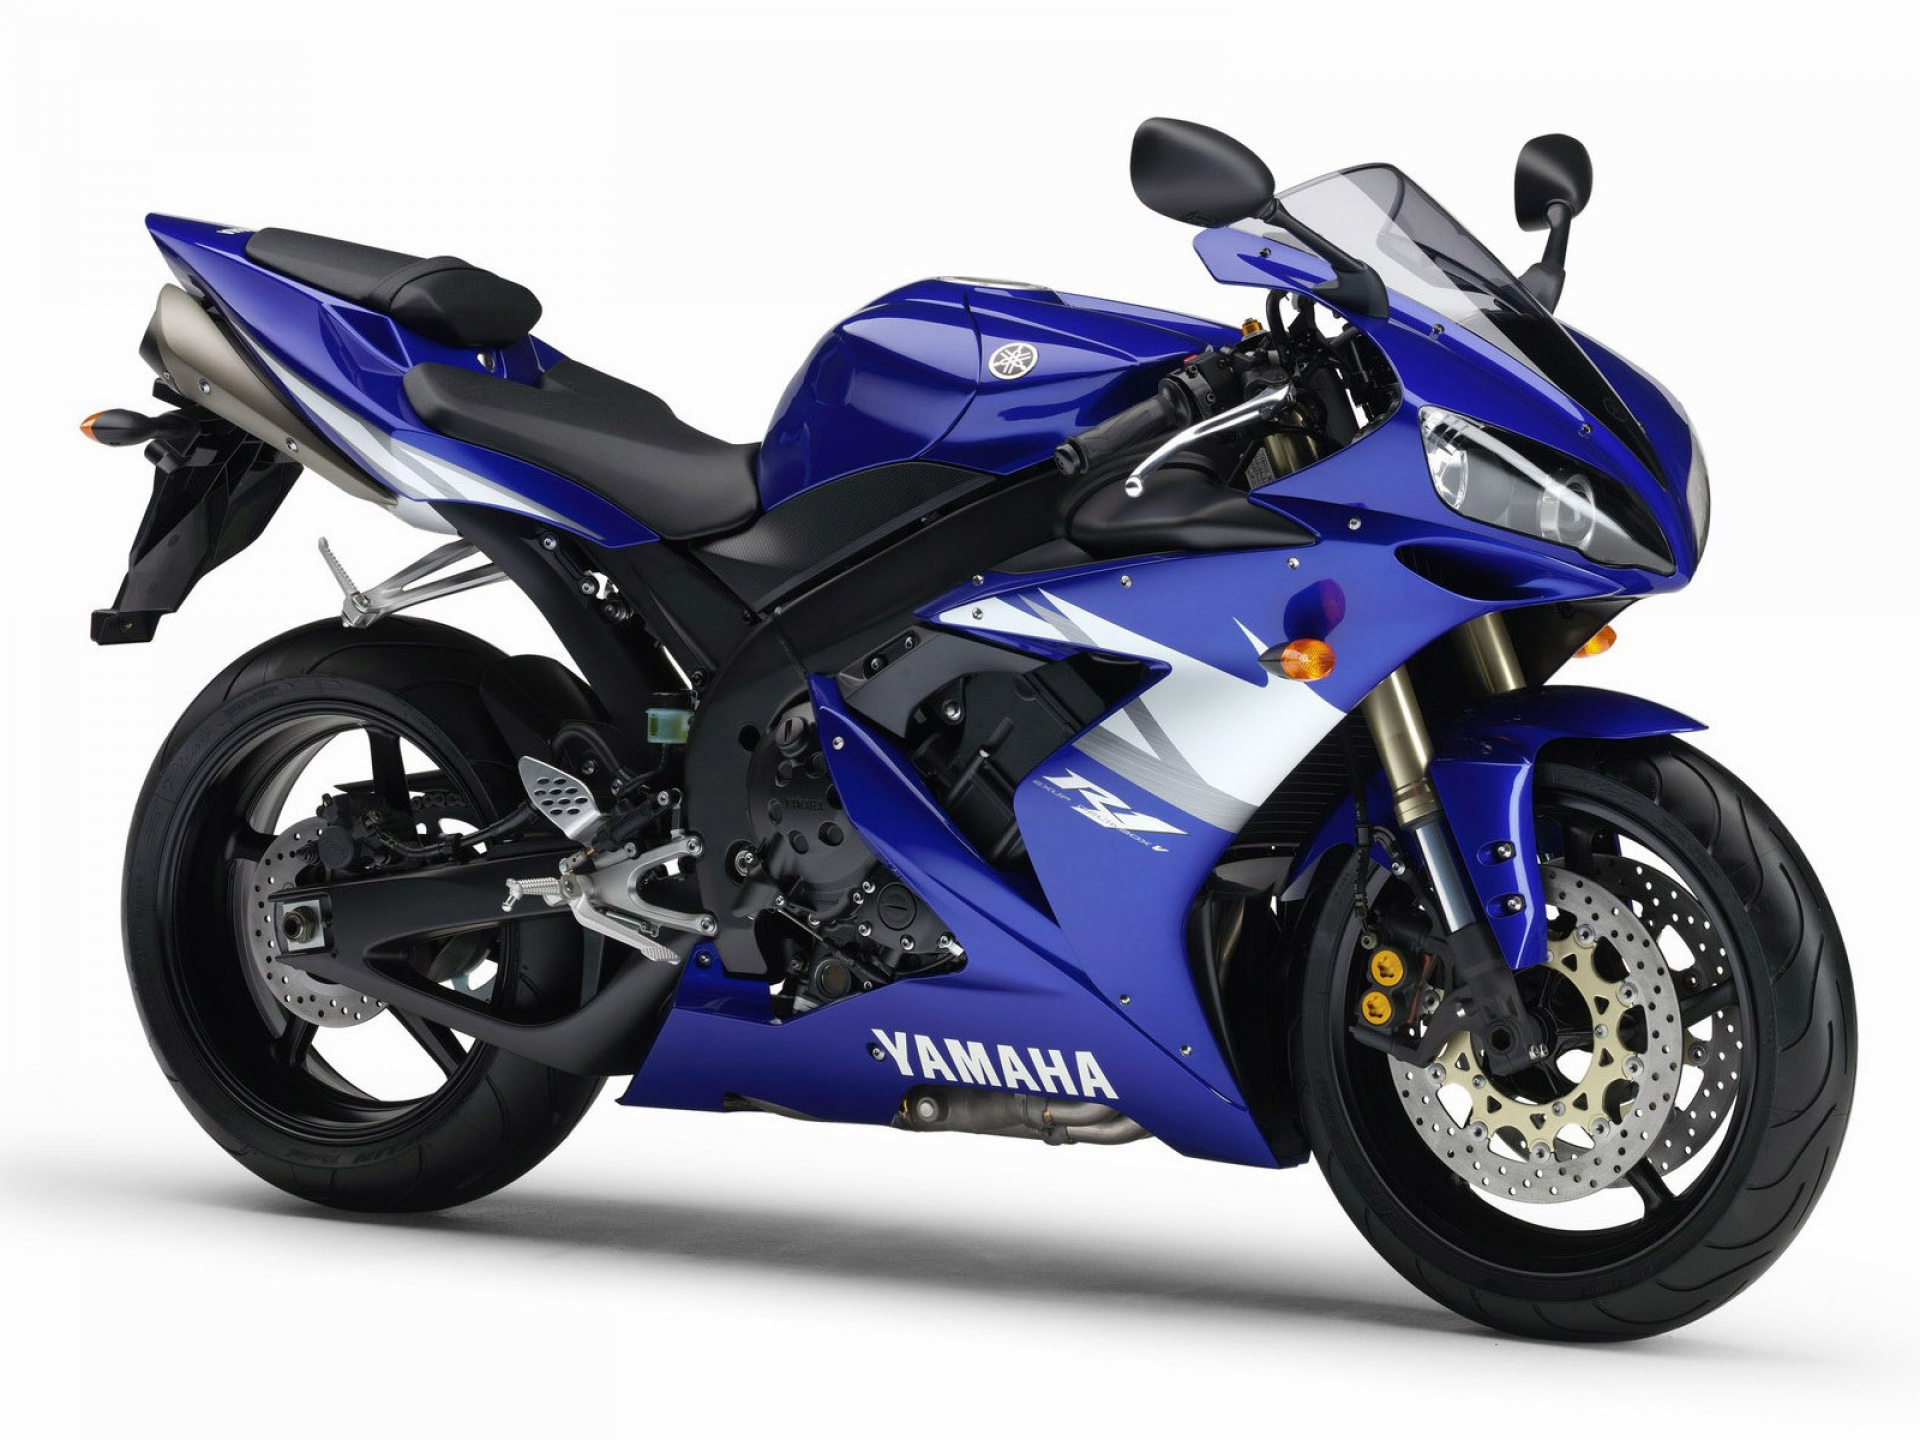 Yamaha Motorcycle Wallpaper Desktop